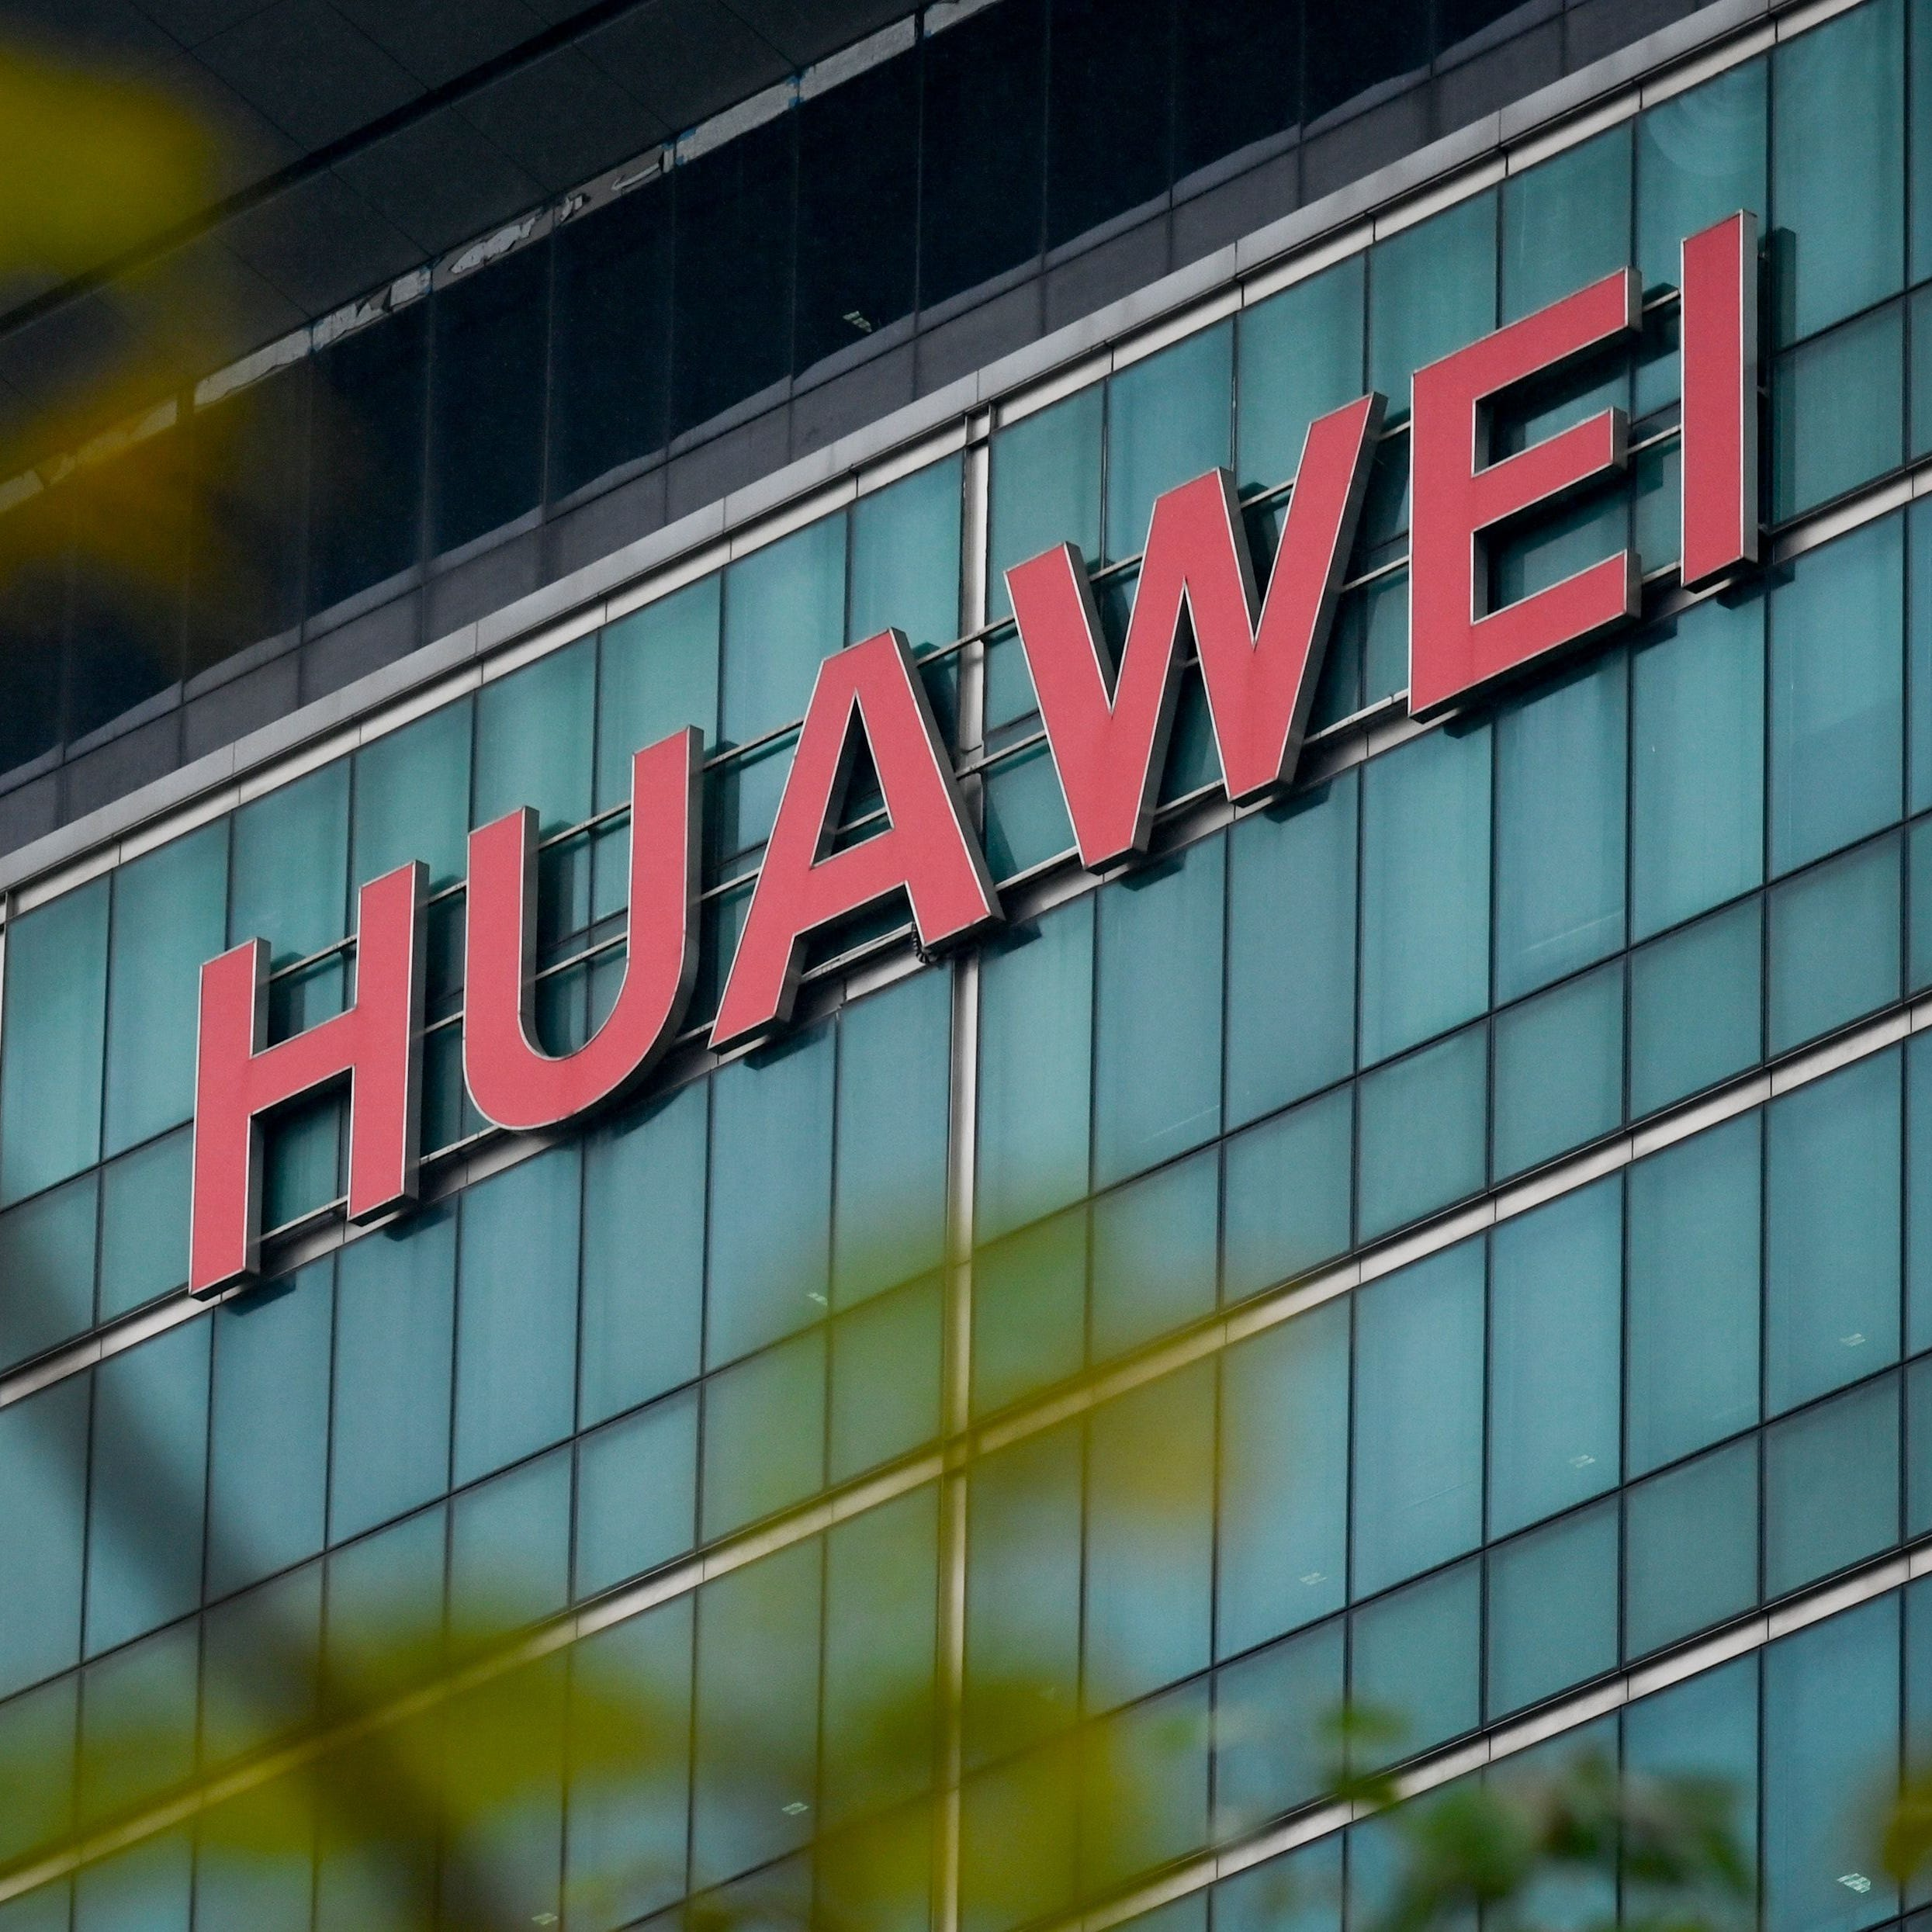 Huawei phone users face loss of some Google services after US ban